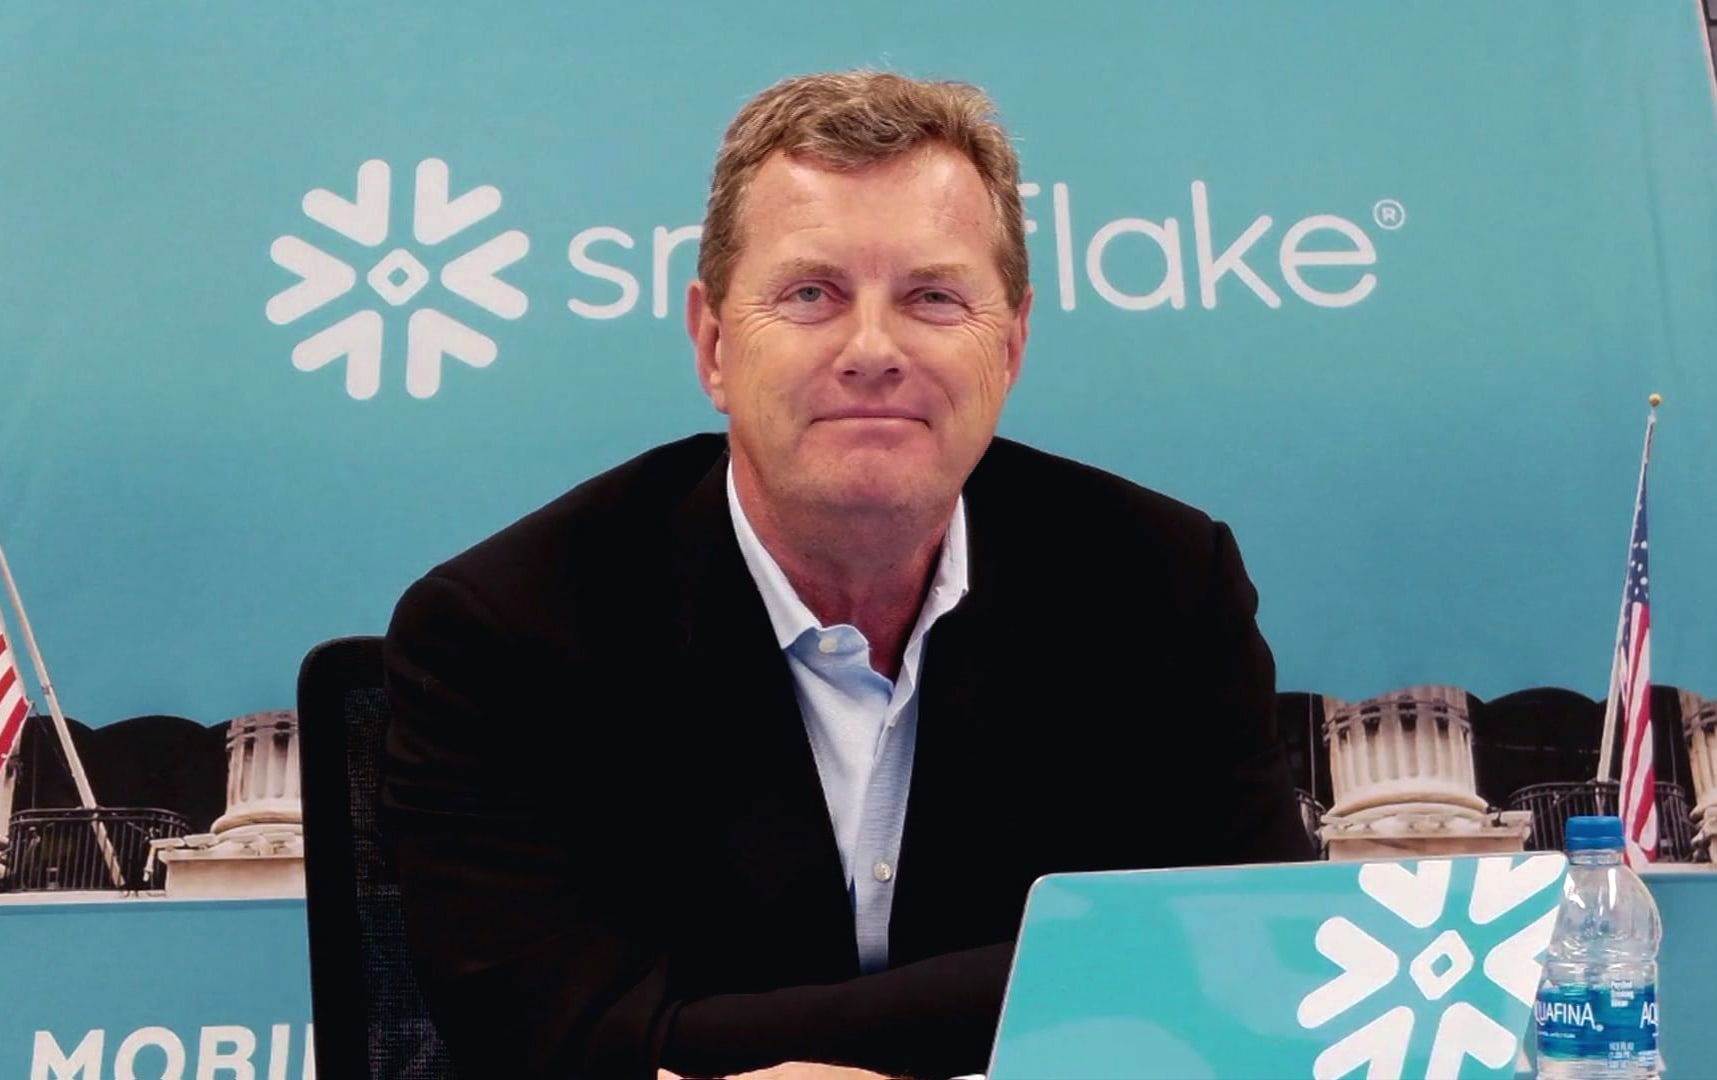 Snowflake's Frank Slootman, CEO of this year's hottest IPO, sets goals with one 'incredibly hard' question